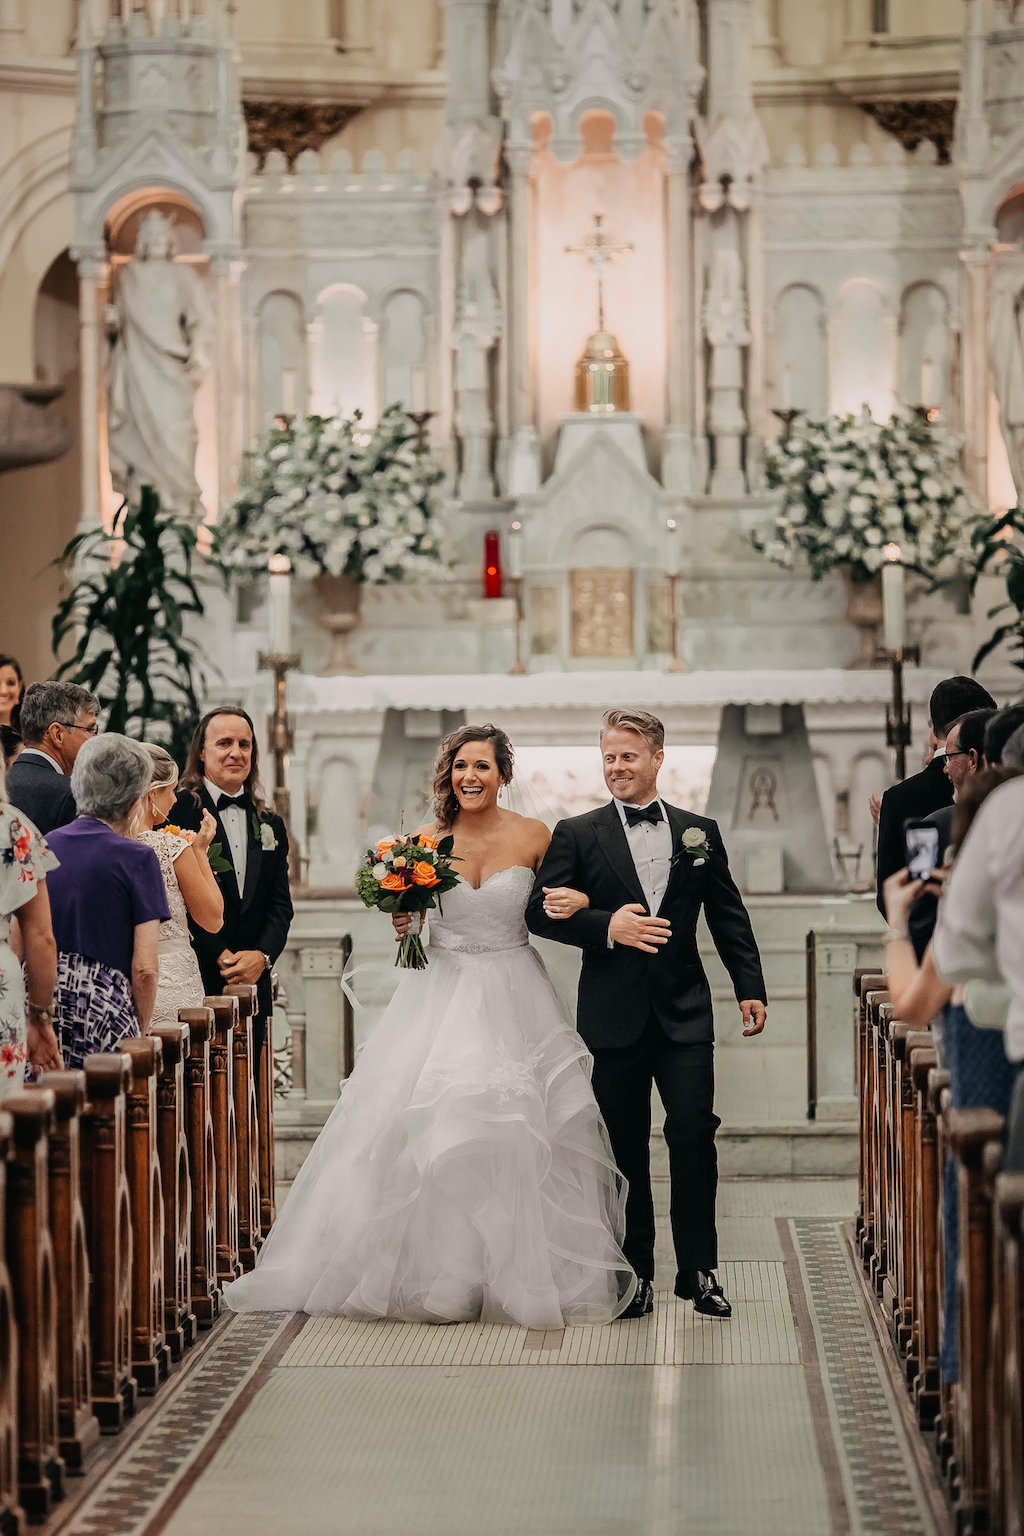 Traditional Church Wedding Ceremony Bride and Groom Exit Portrait with Orange and Greenery Tropical Bouquet   Tampa Bay Wedding Photographer Rad Red Creative